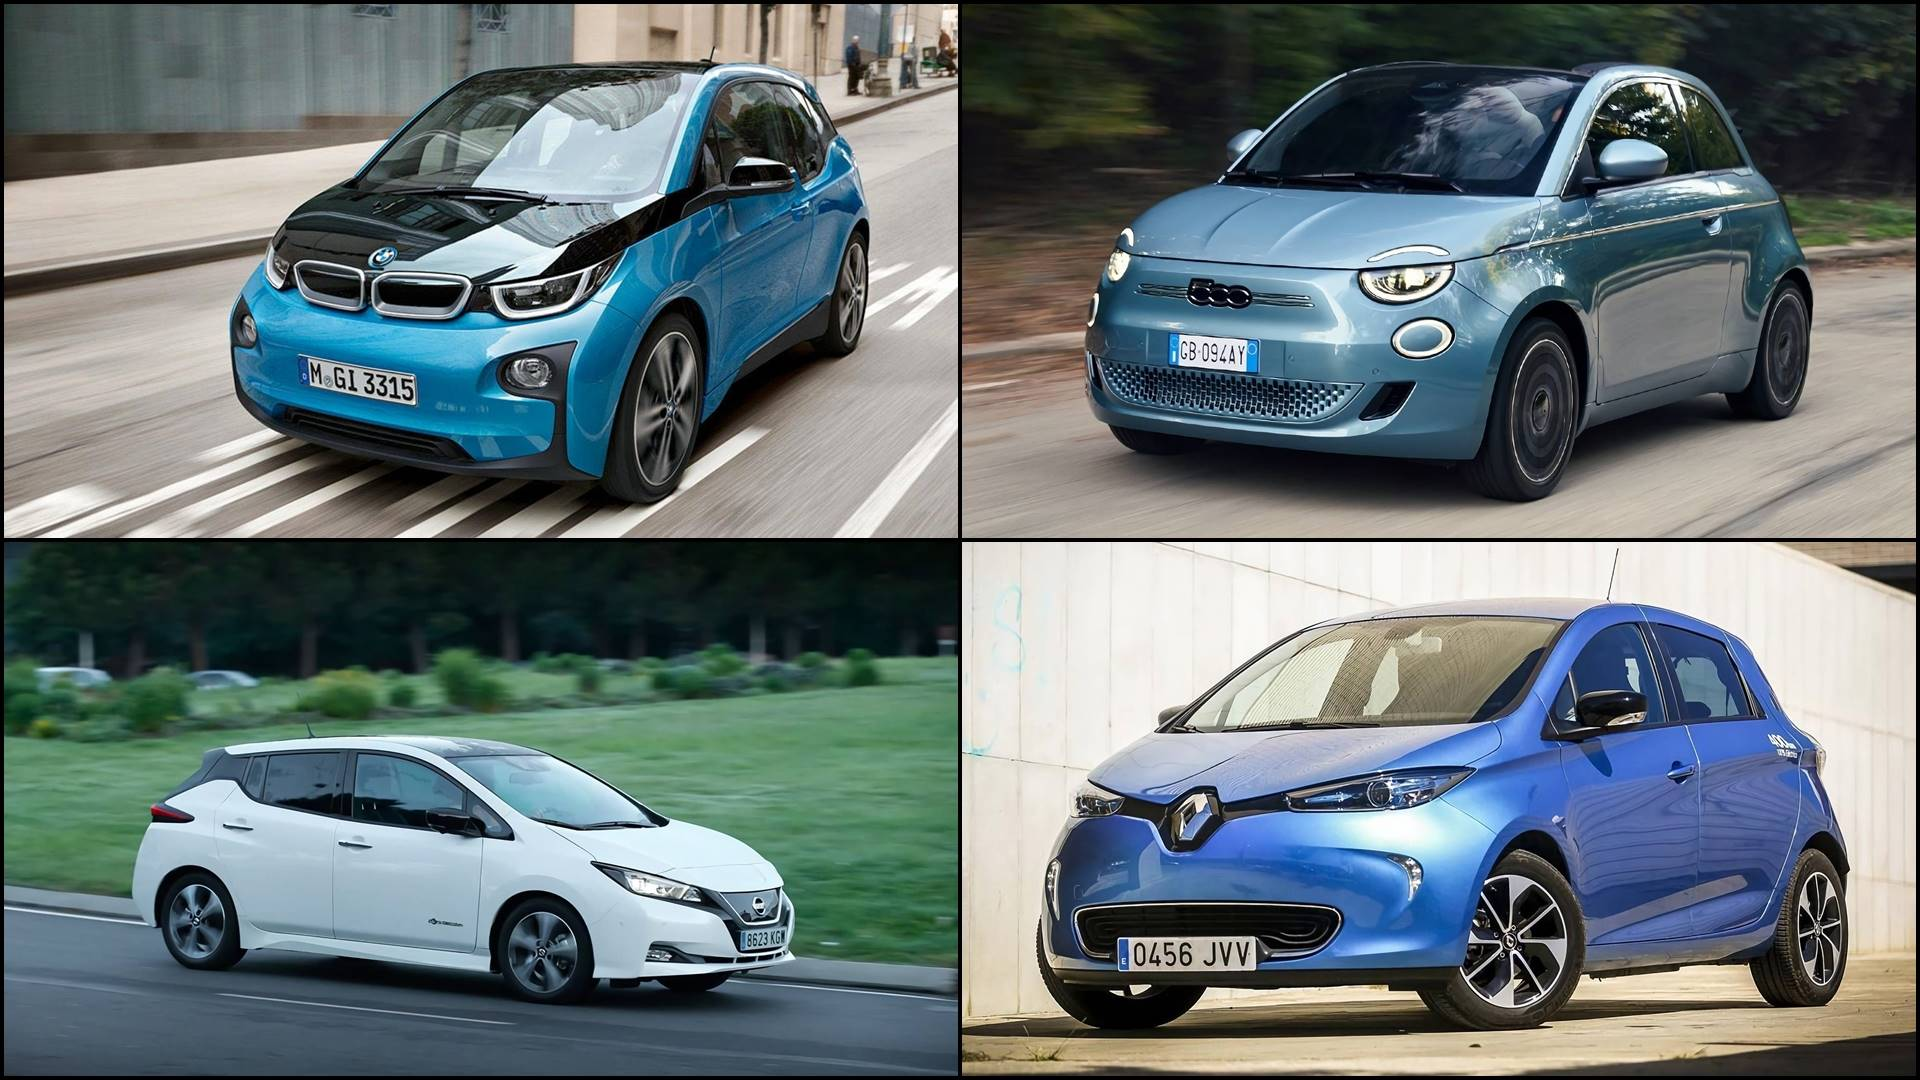 The best electric cars under 20,000 euros